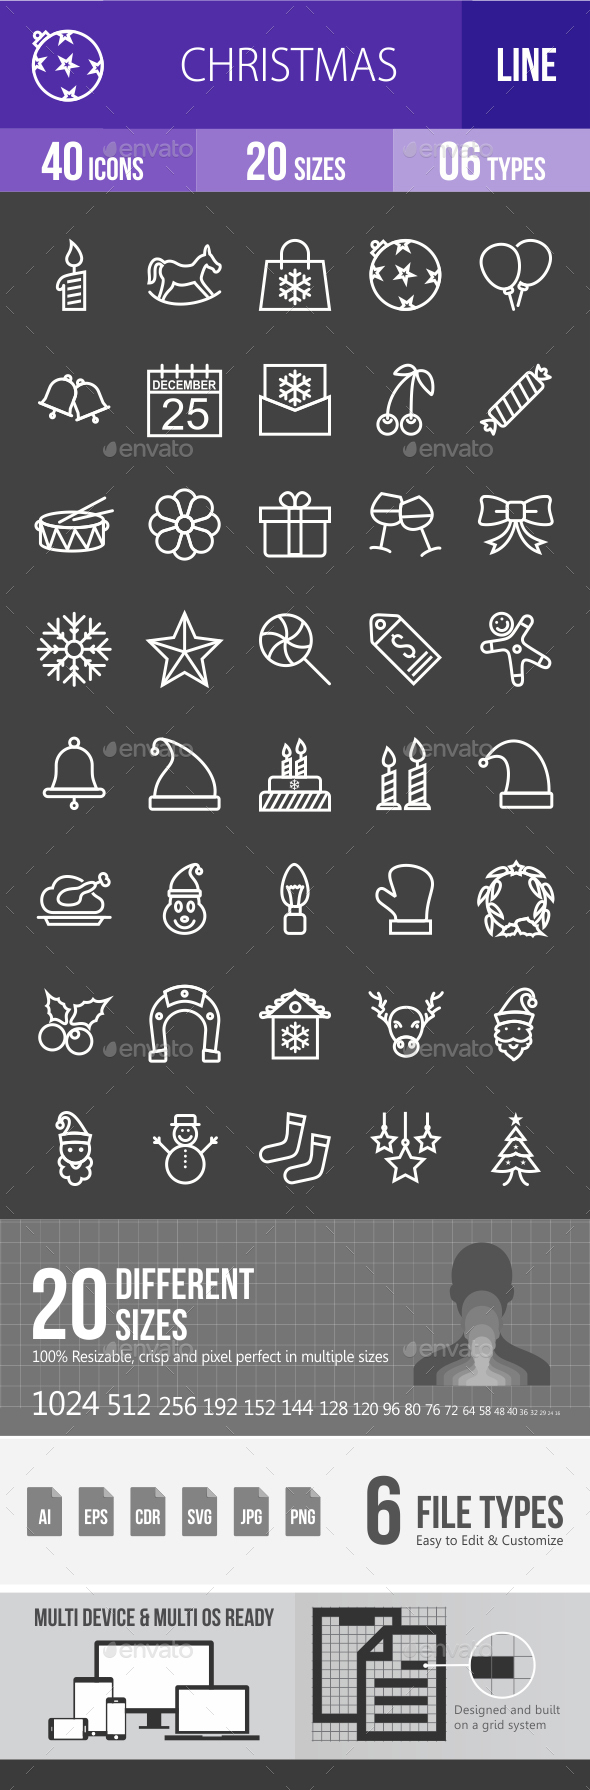 Christmas Line Inverted Icons - Icons